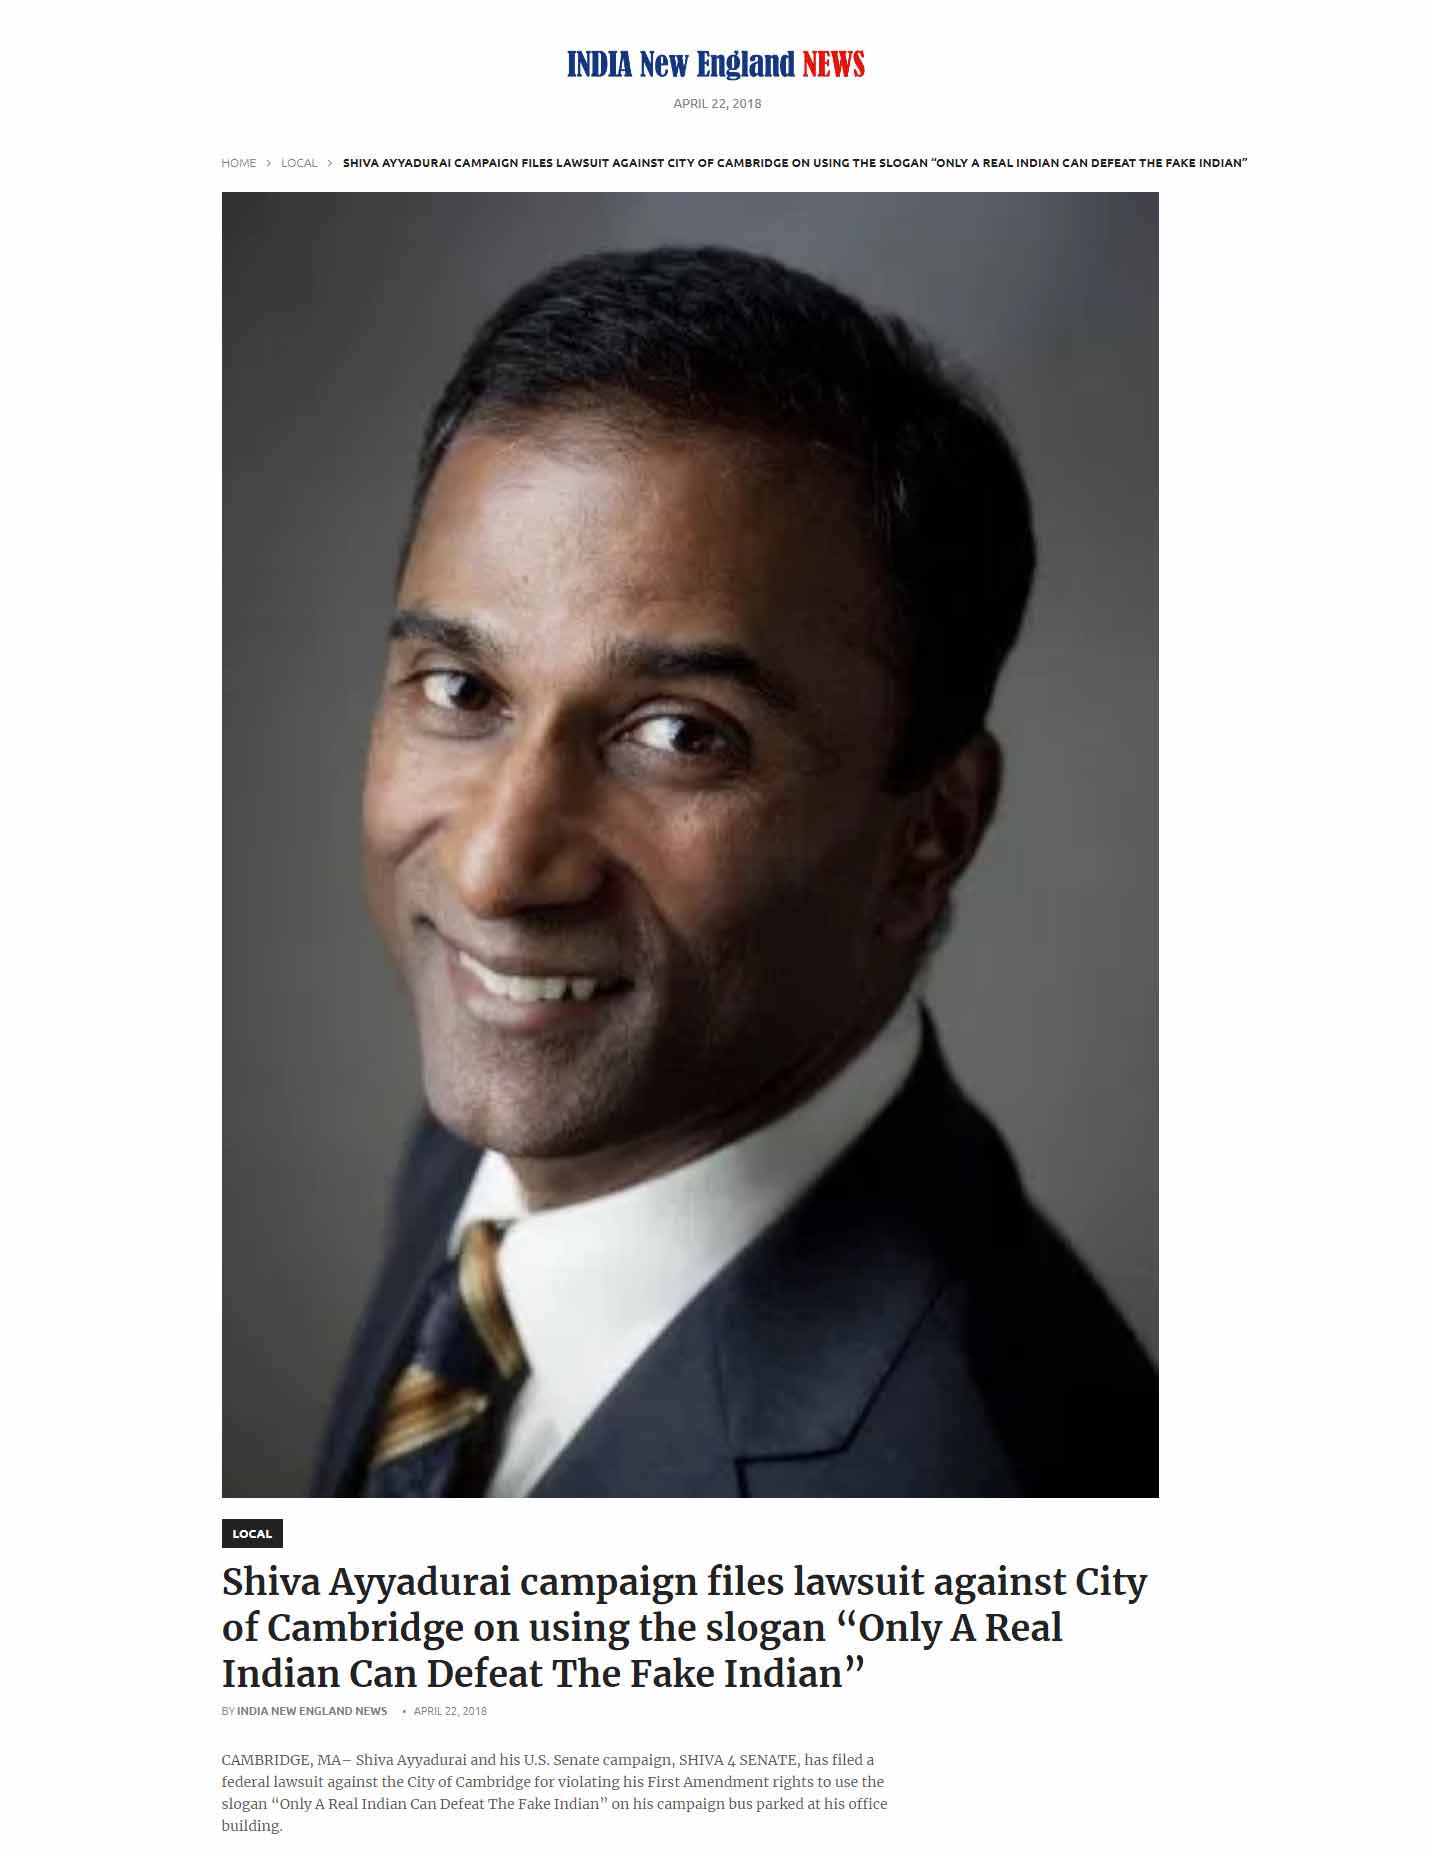 """Shiva Ayyadurai Campaign Files Lawsuit Against City Of Cambridge On Using The Slogan """"Only A Real Indian Can Defeat The Fake Indian"""""""